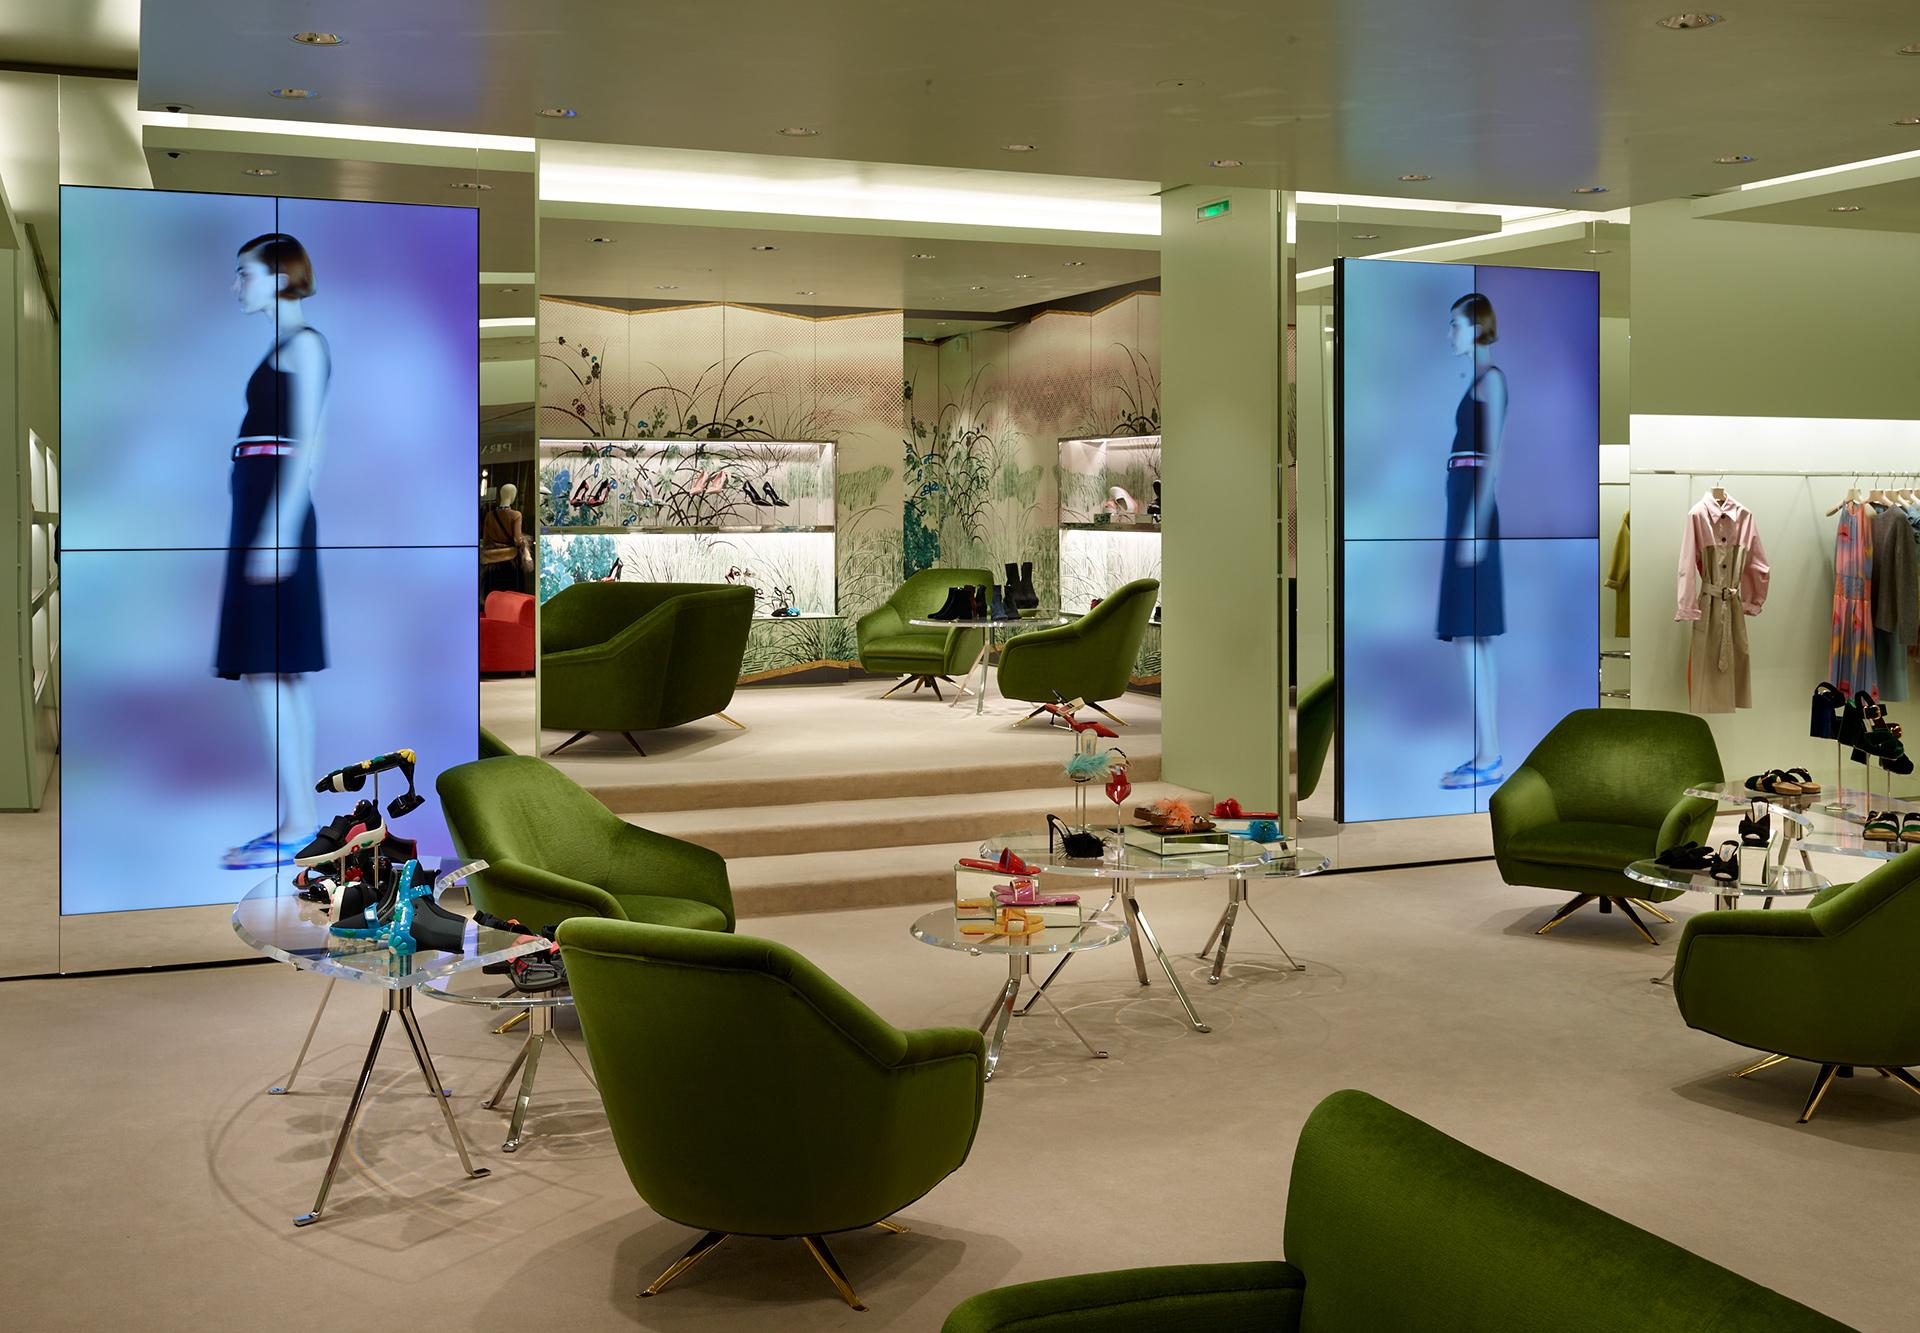 Prada_Modular-Design_Avenue-Montaigne_Paris-3.jpg